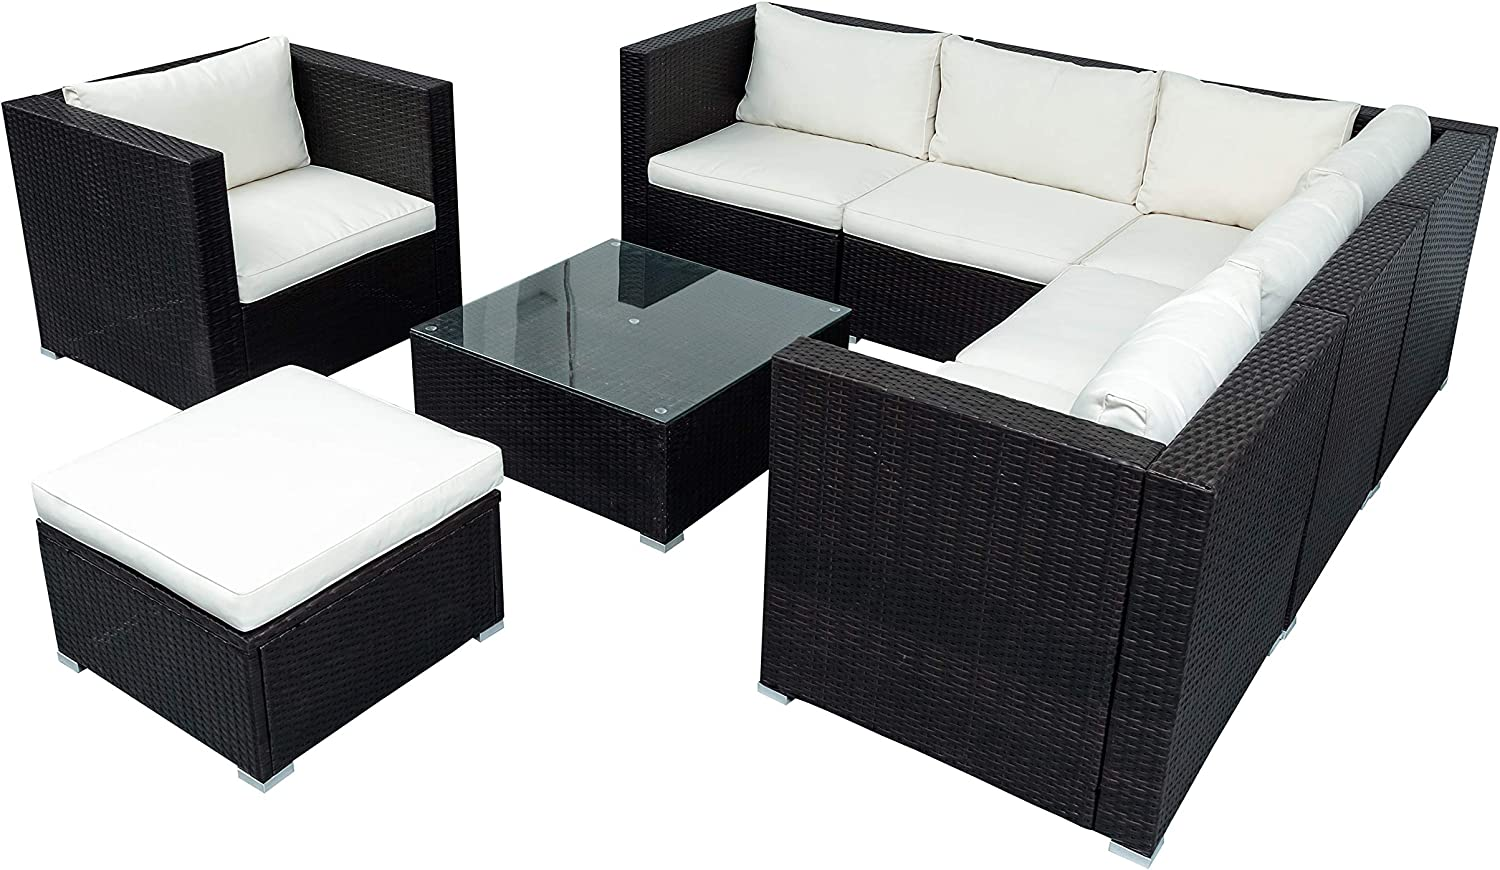 FYH Patio Furniture Sets, Outdoor PE Rattan Sectional Sofa, 8-Piece Patio Wicker Corner Sofa with Cushions, Ottoman and Coffee Table (Brown)